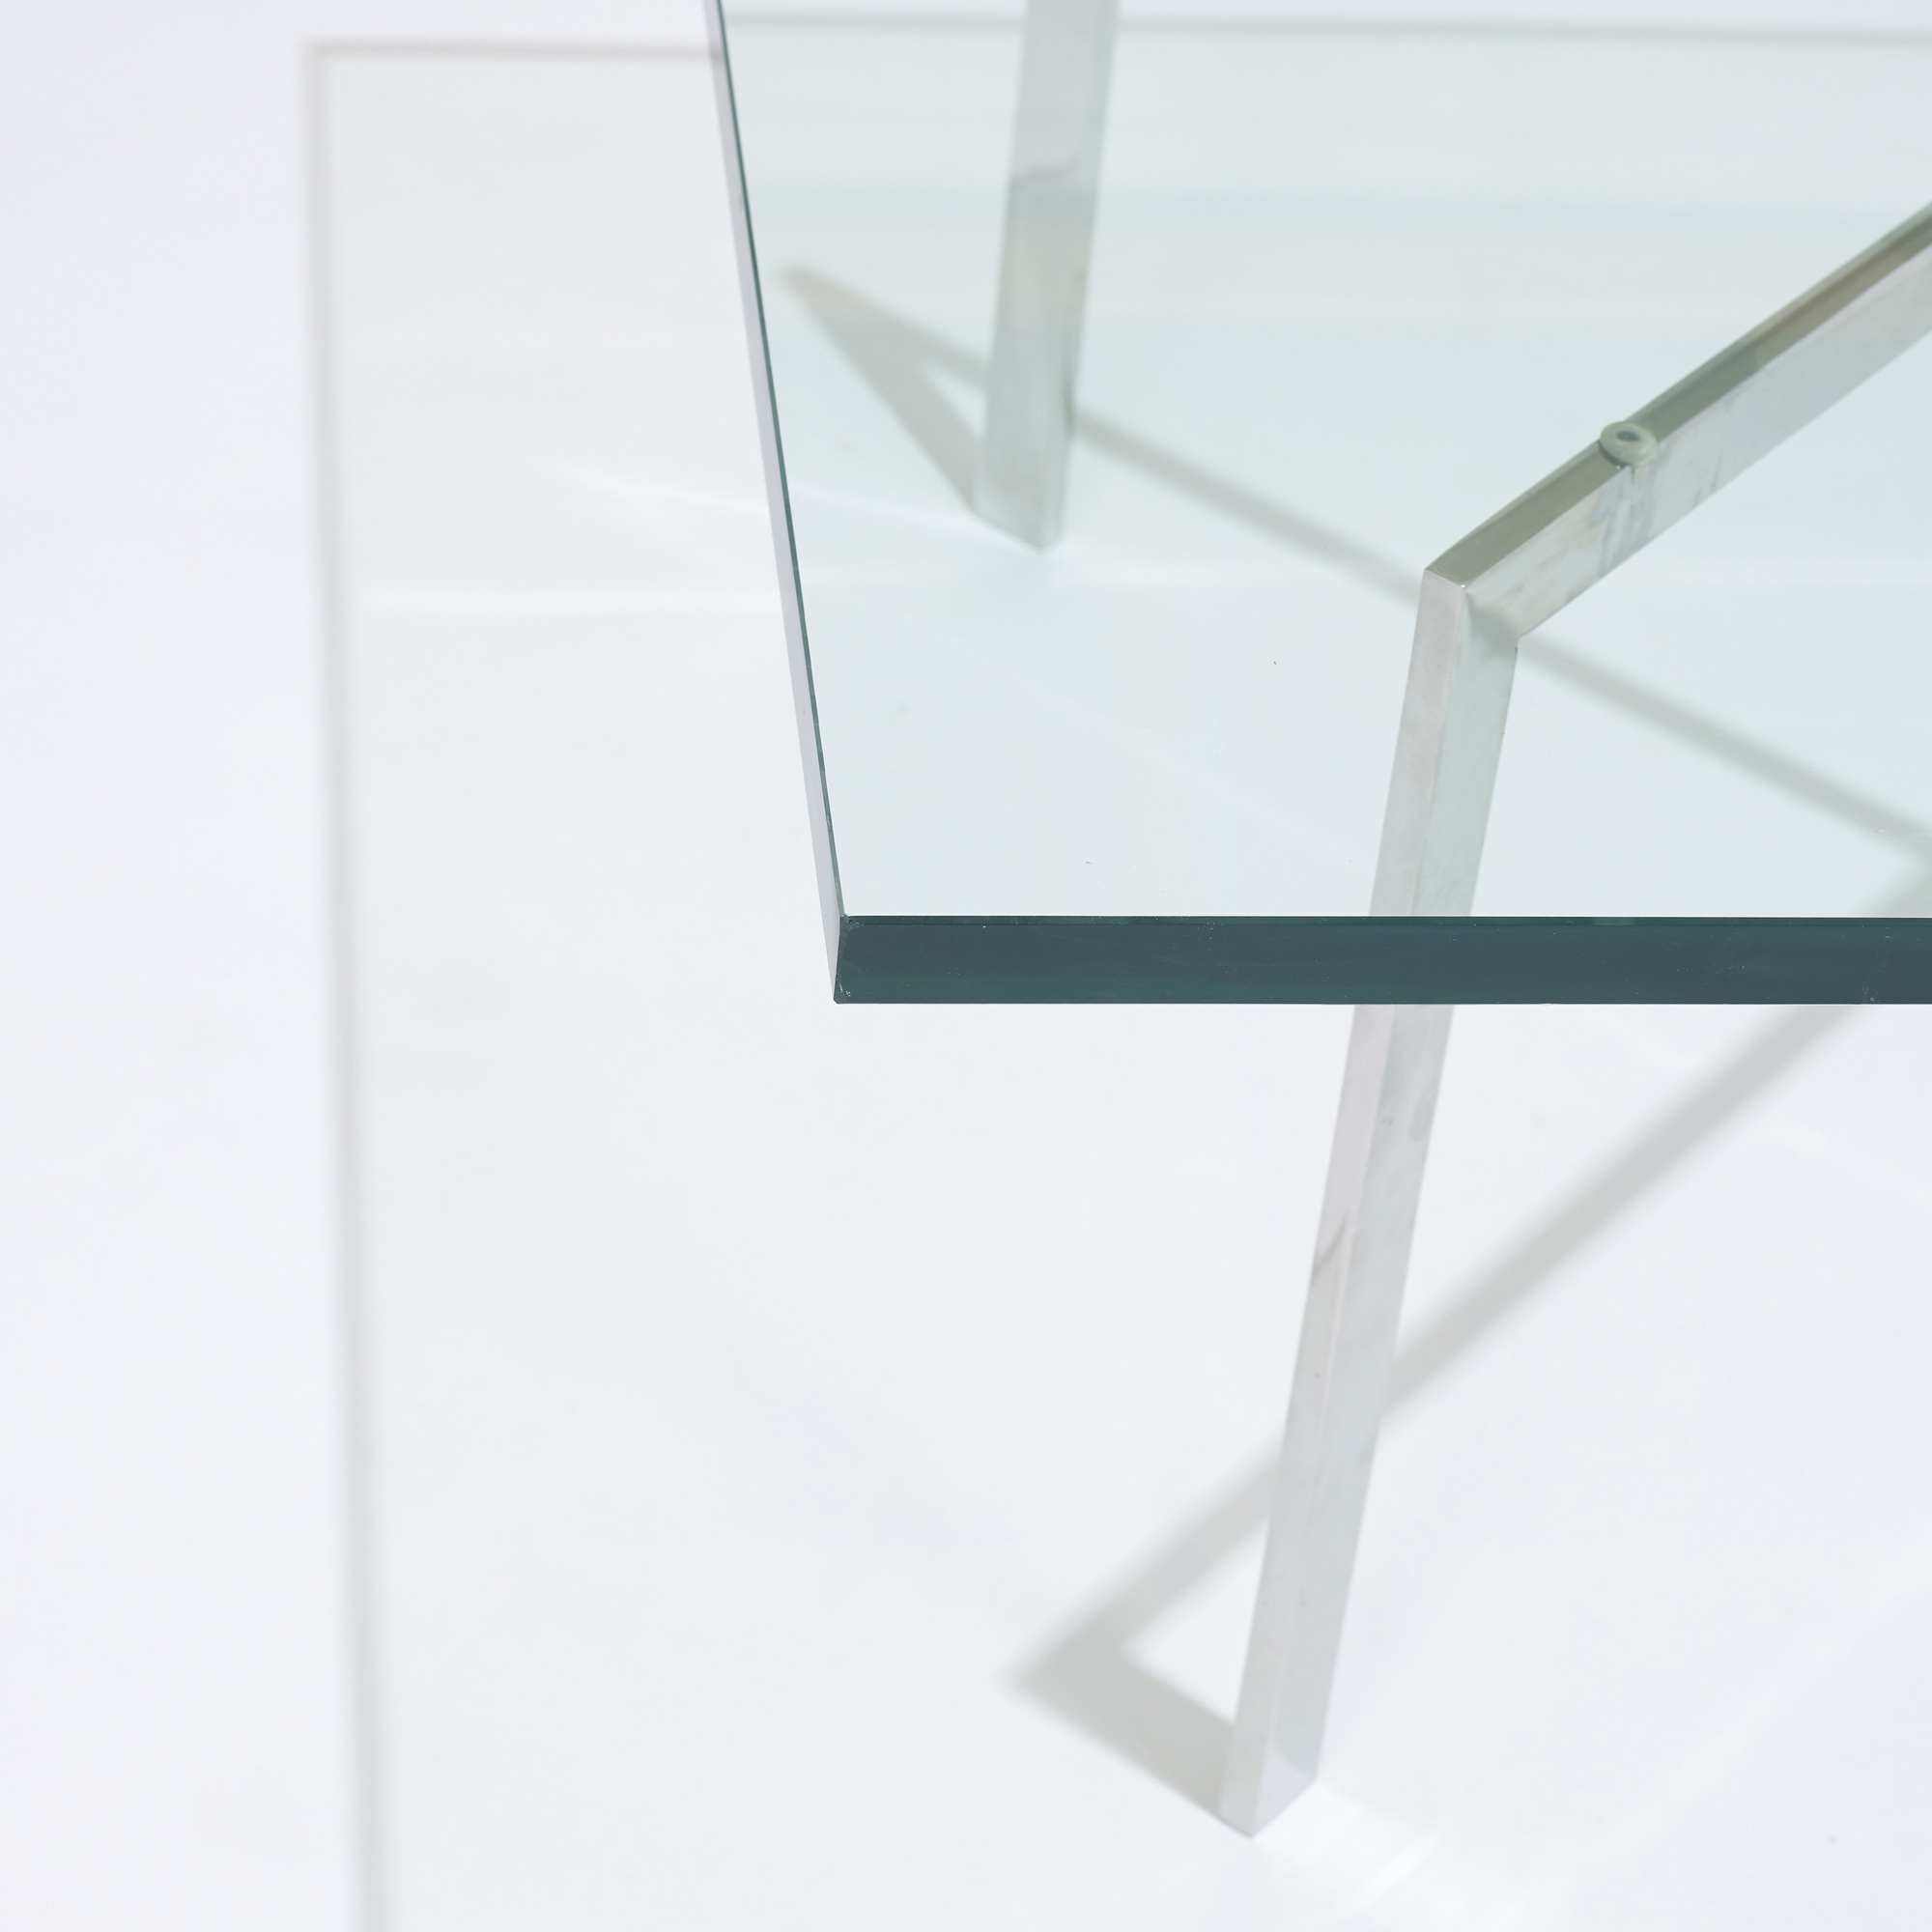 147: Ludwig Mies van der Rohe / custom Barcelona coffee table from 860 Lake Shore Drive, Chicago (3 of 3)